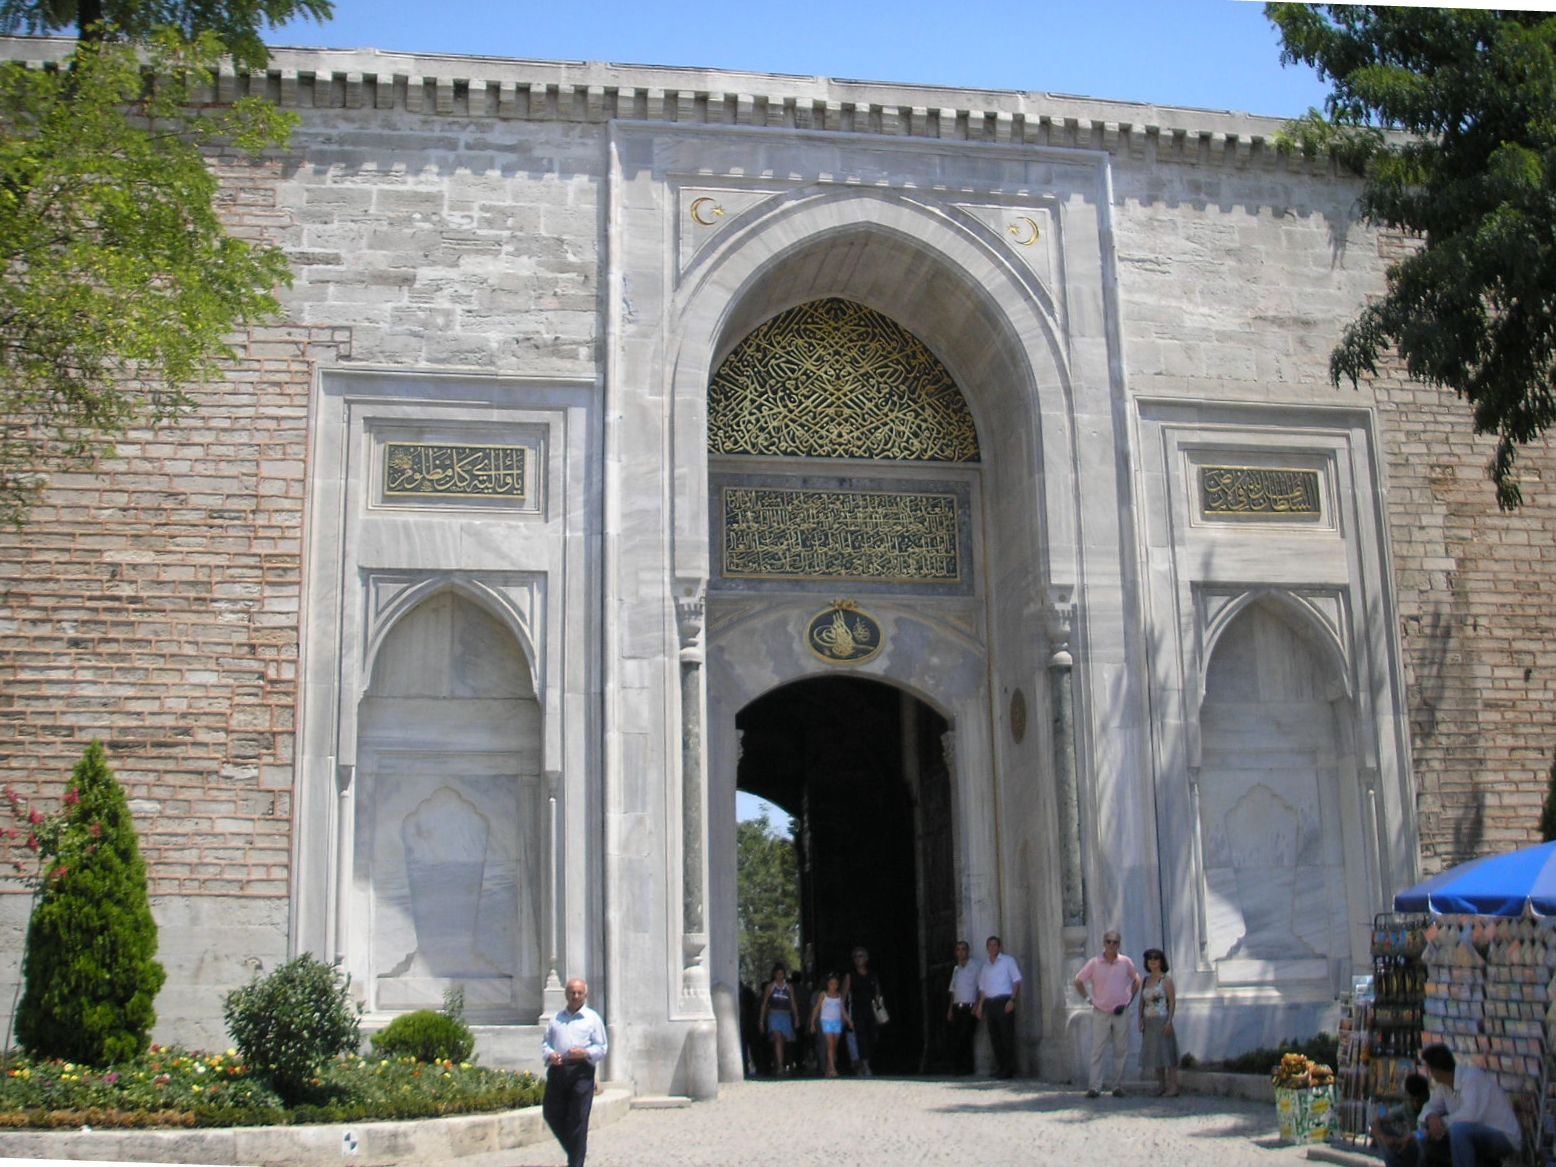 The Imperial Gate, Topkapi Palace, Constantinople